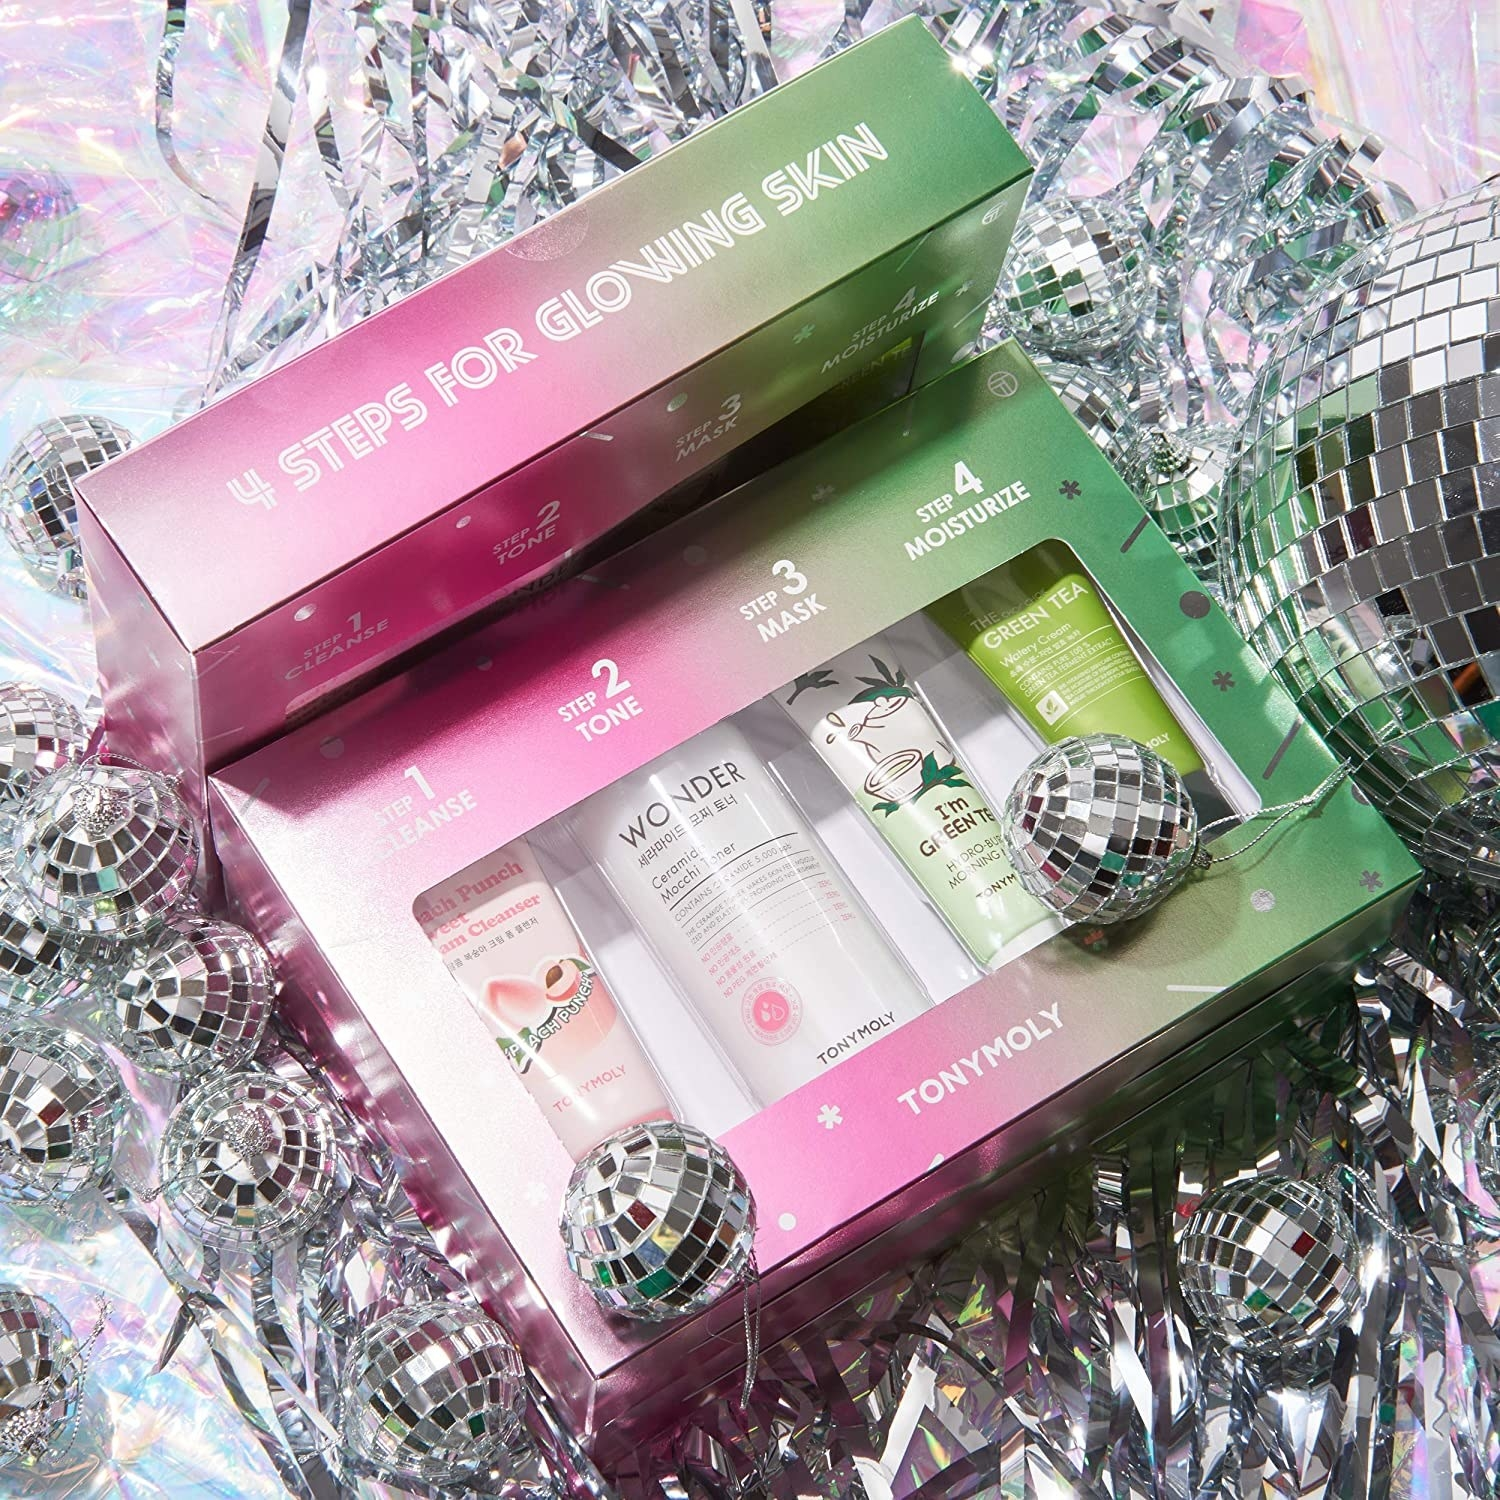 The skincare set in an included gift box